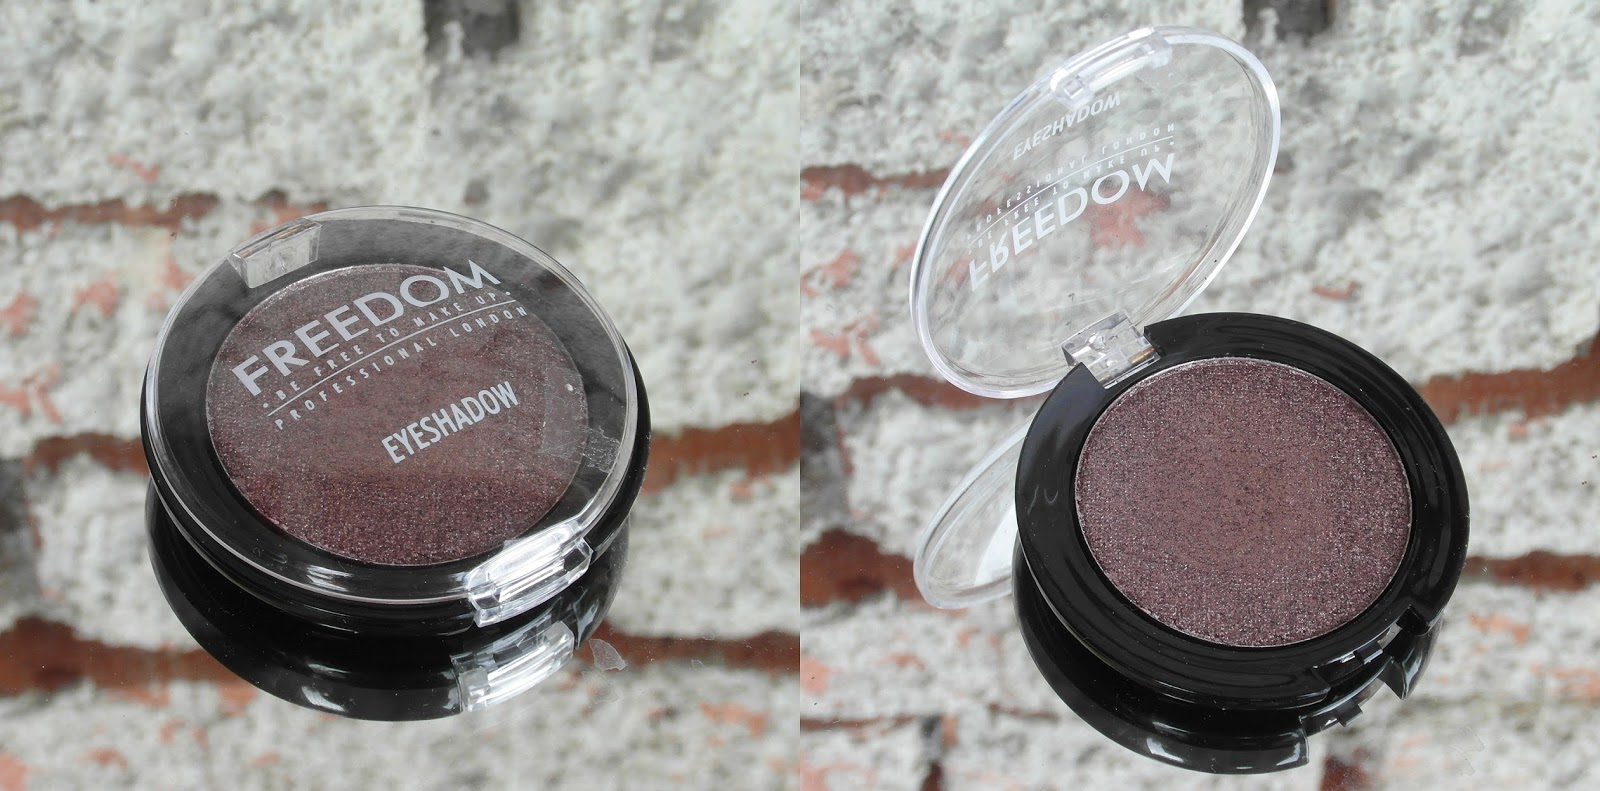 FREEDOM mono eyeshadows review!